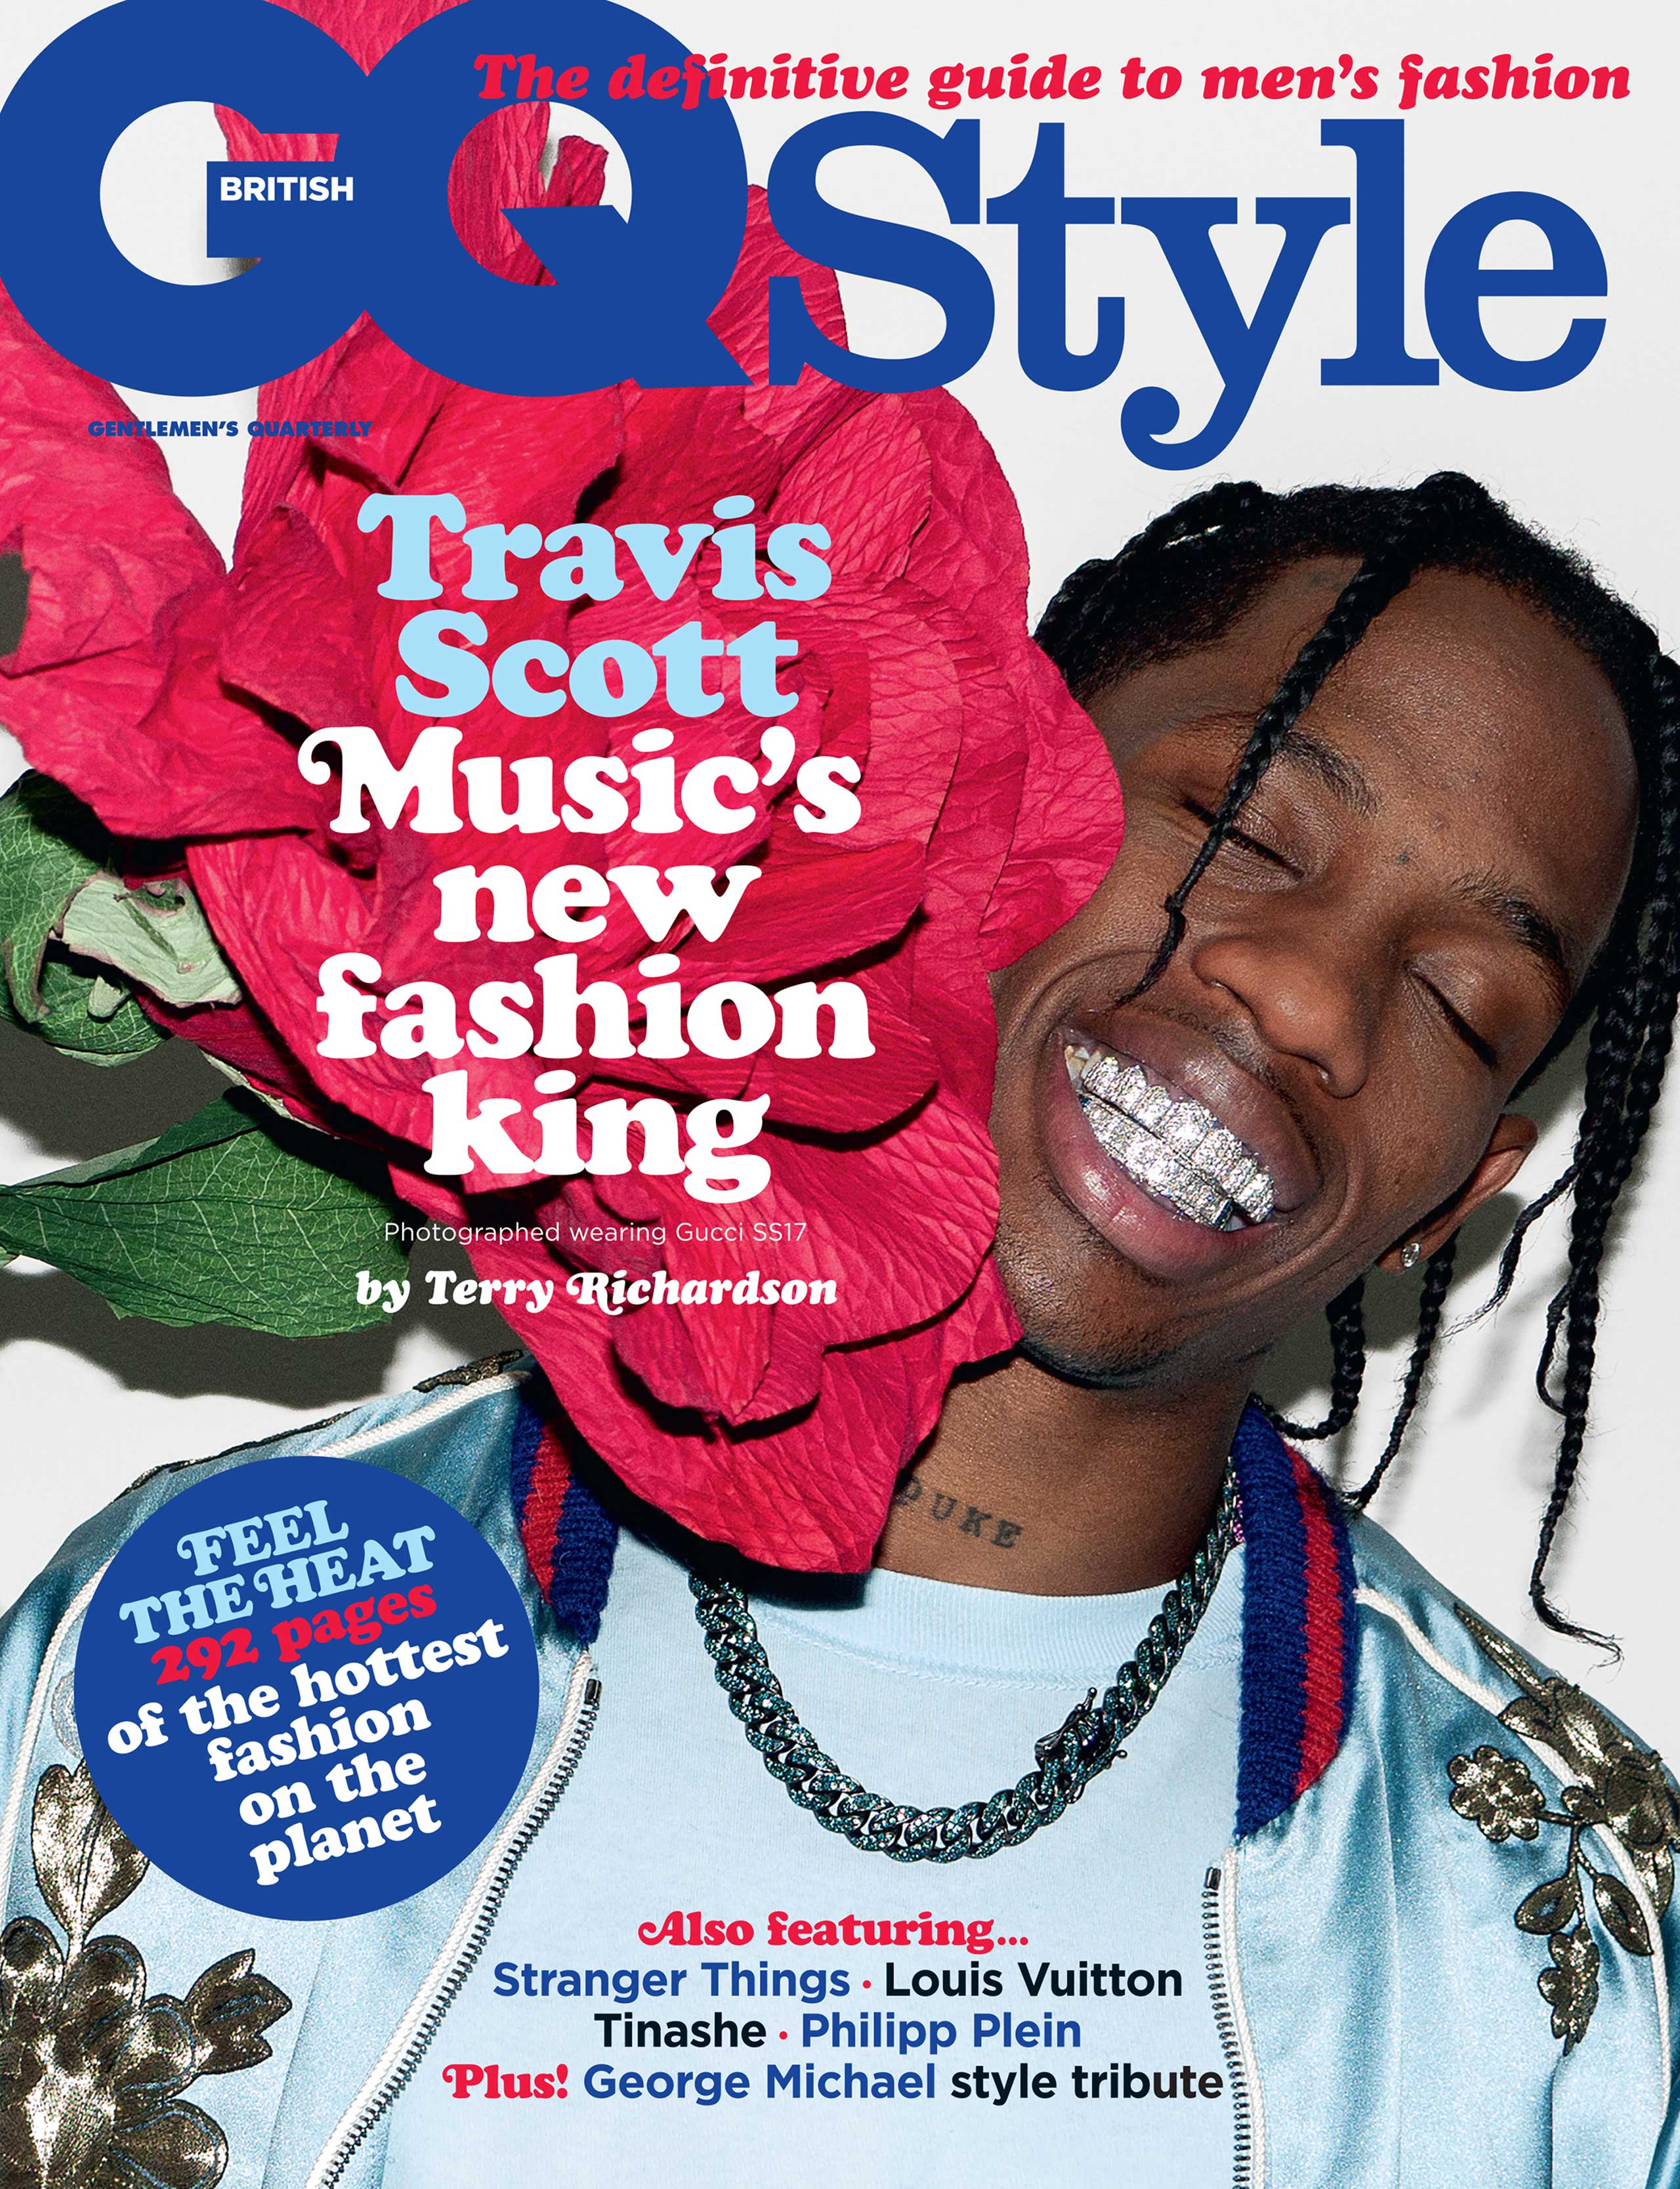 Cover of the spring summer issue of British GQ Style